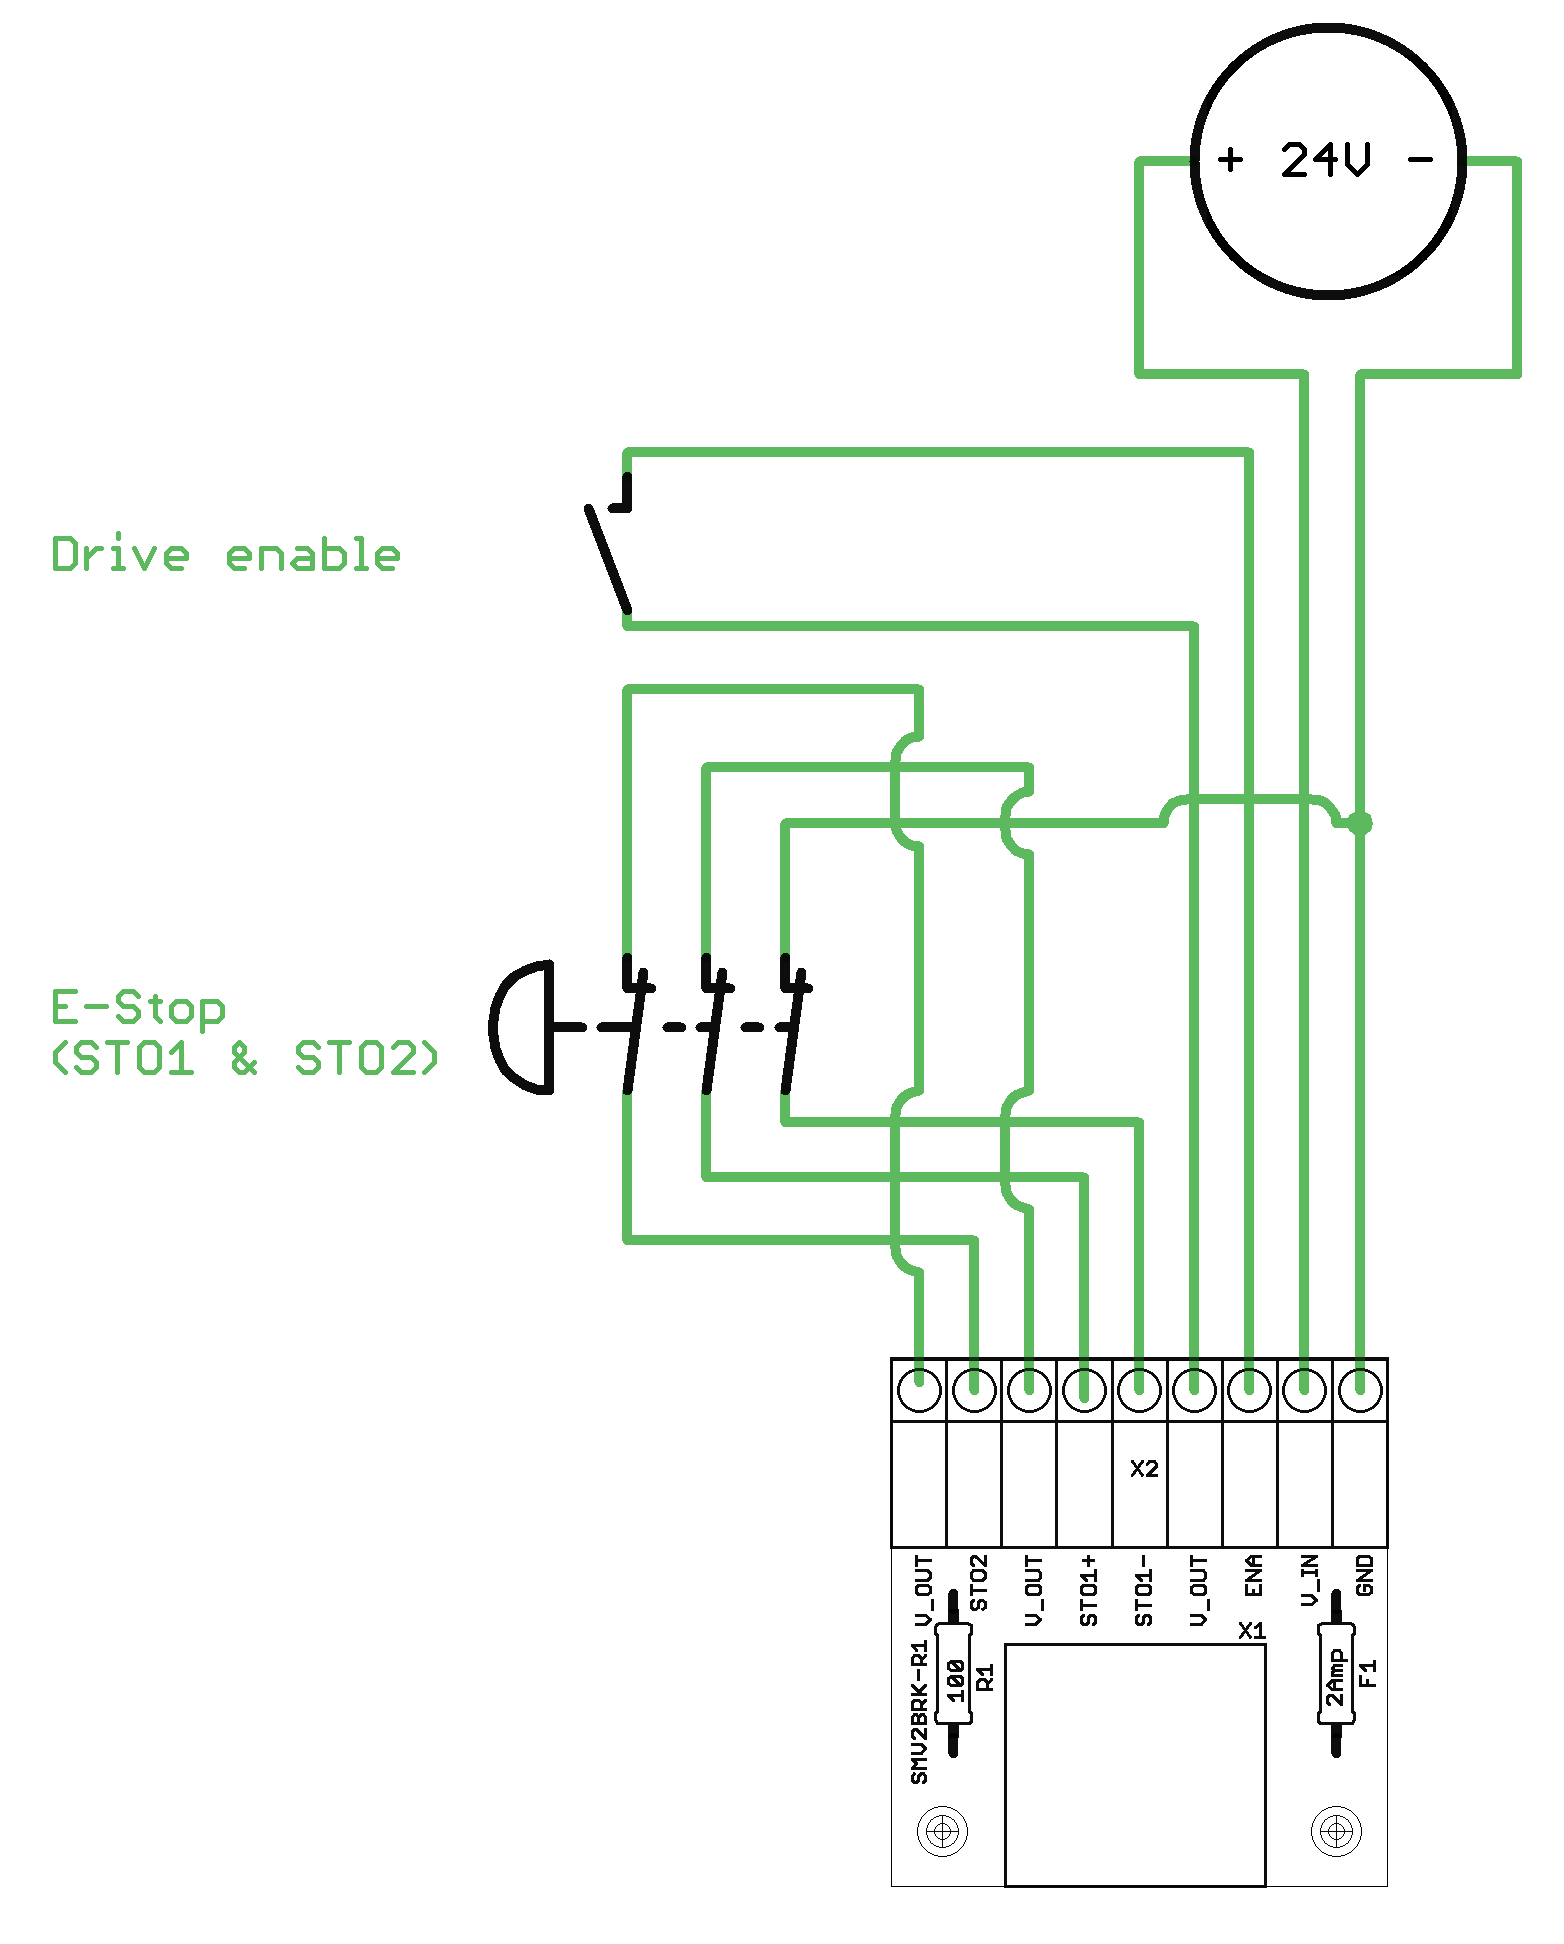 hardware archives page 4 of 8 servo drive developerservo drive developer page 4